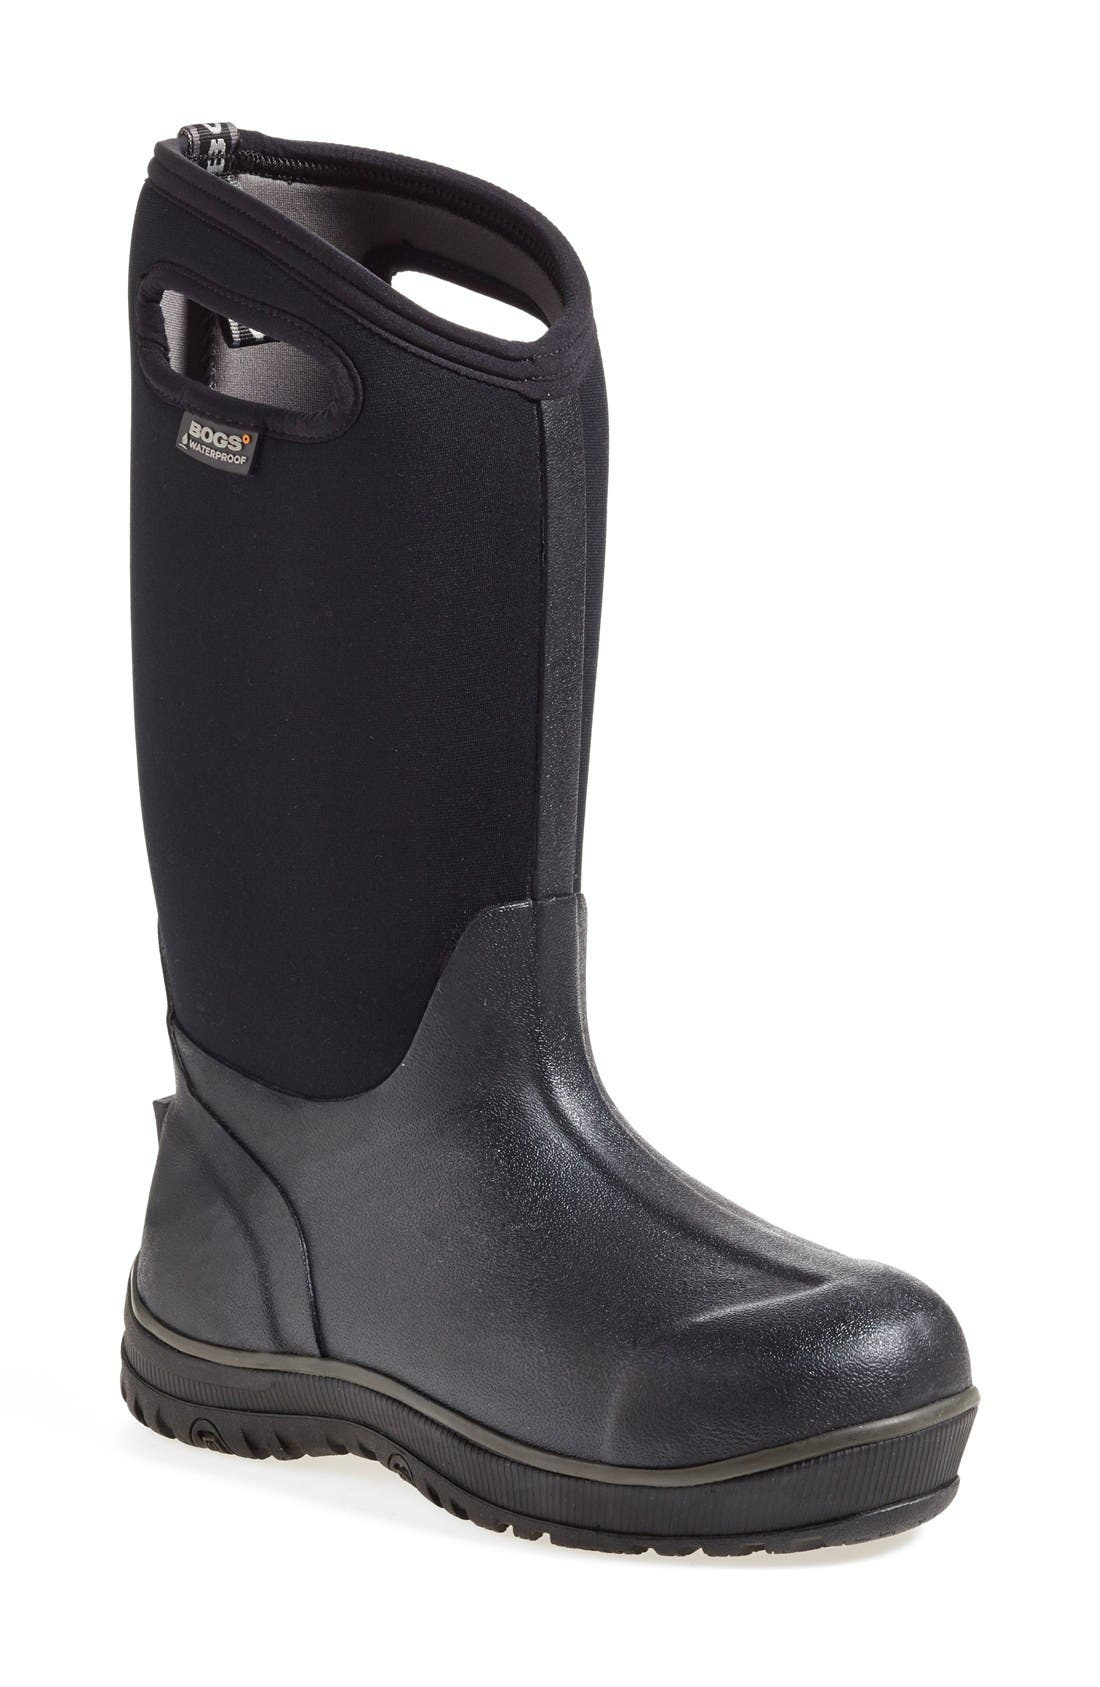 'Classic' Ultra High Waterproof Snow Boot with Cutout Handles,                         Main,                         color, Black